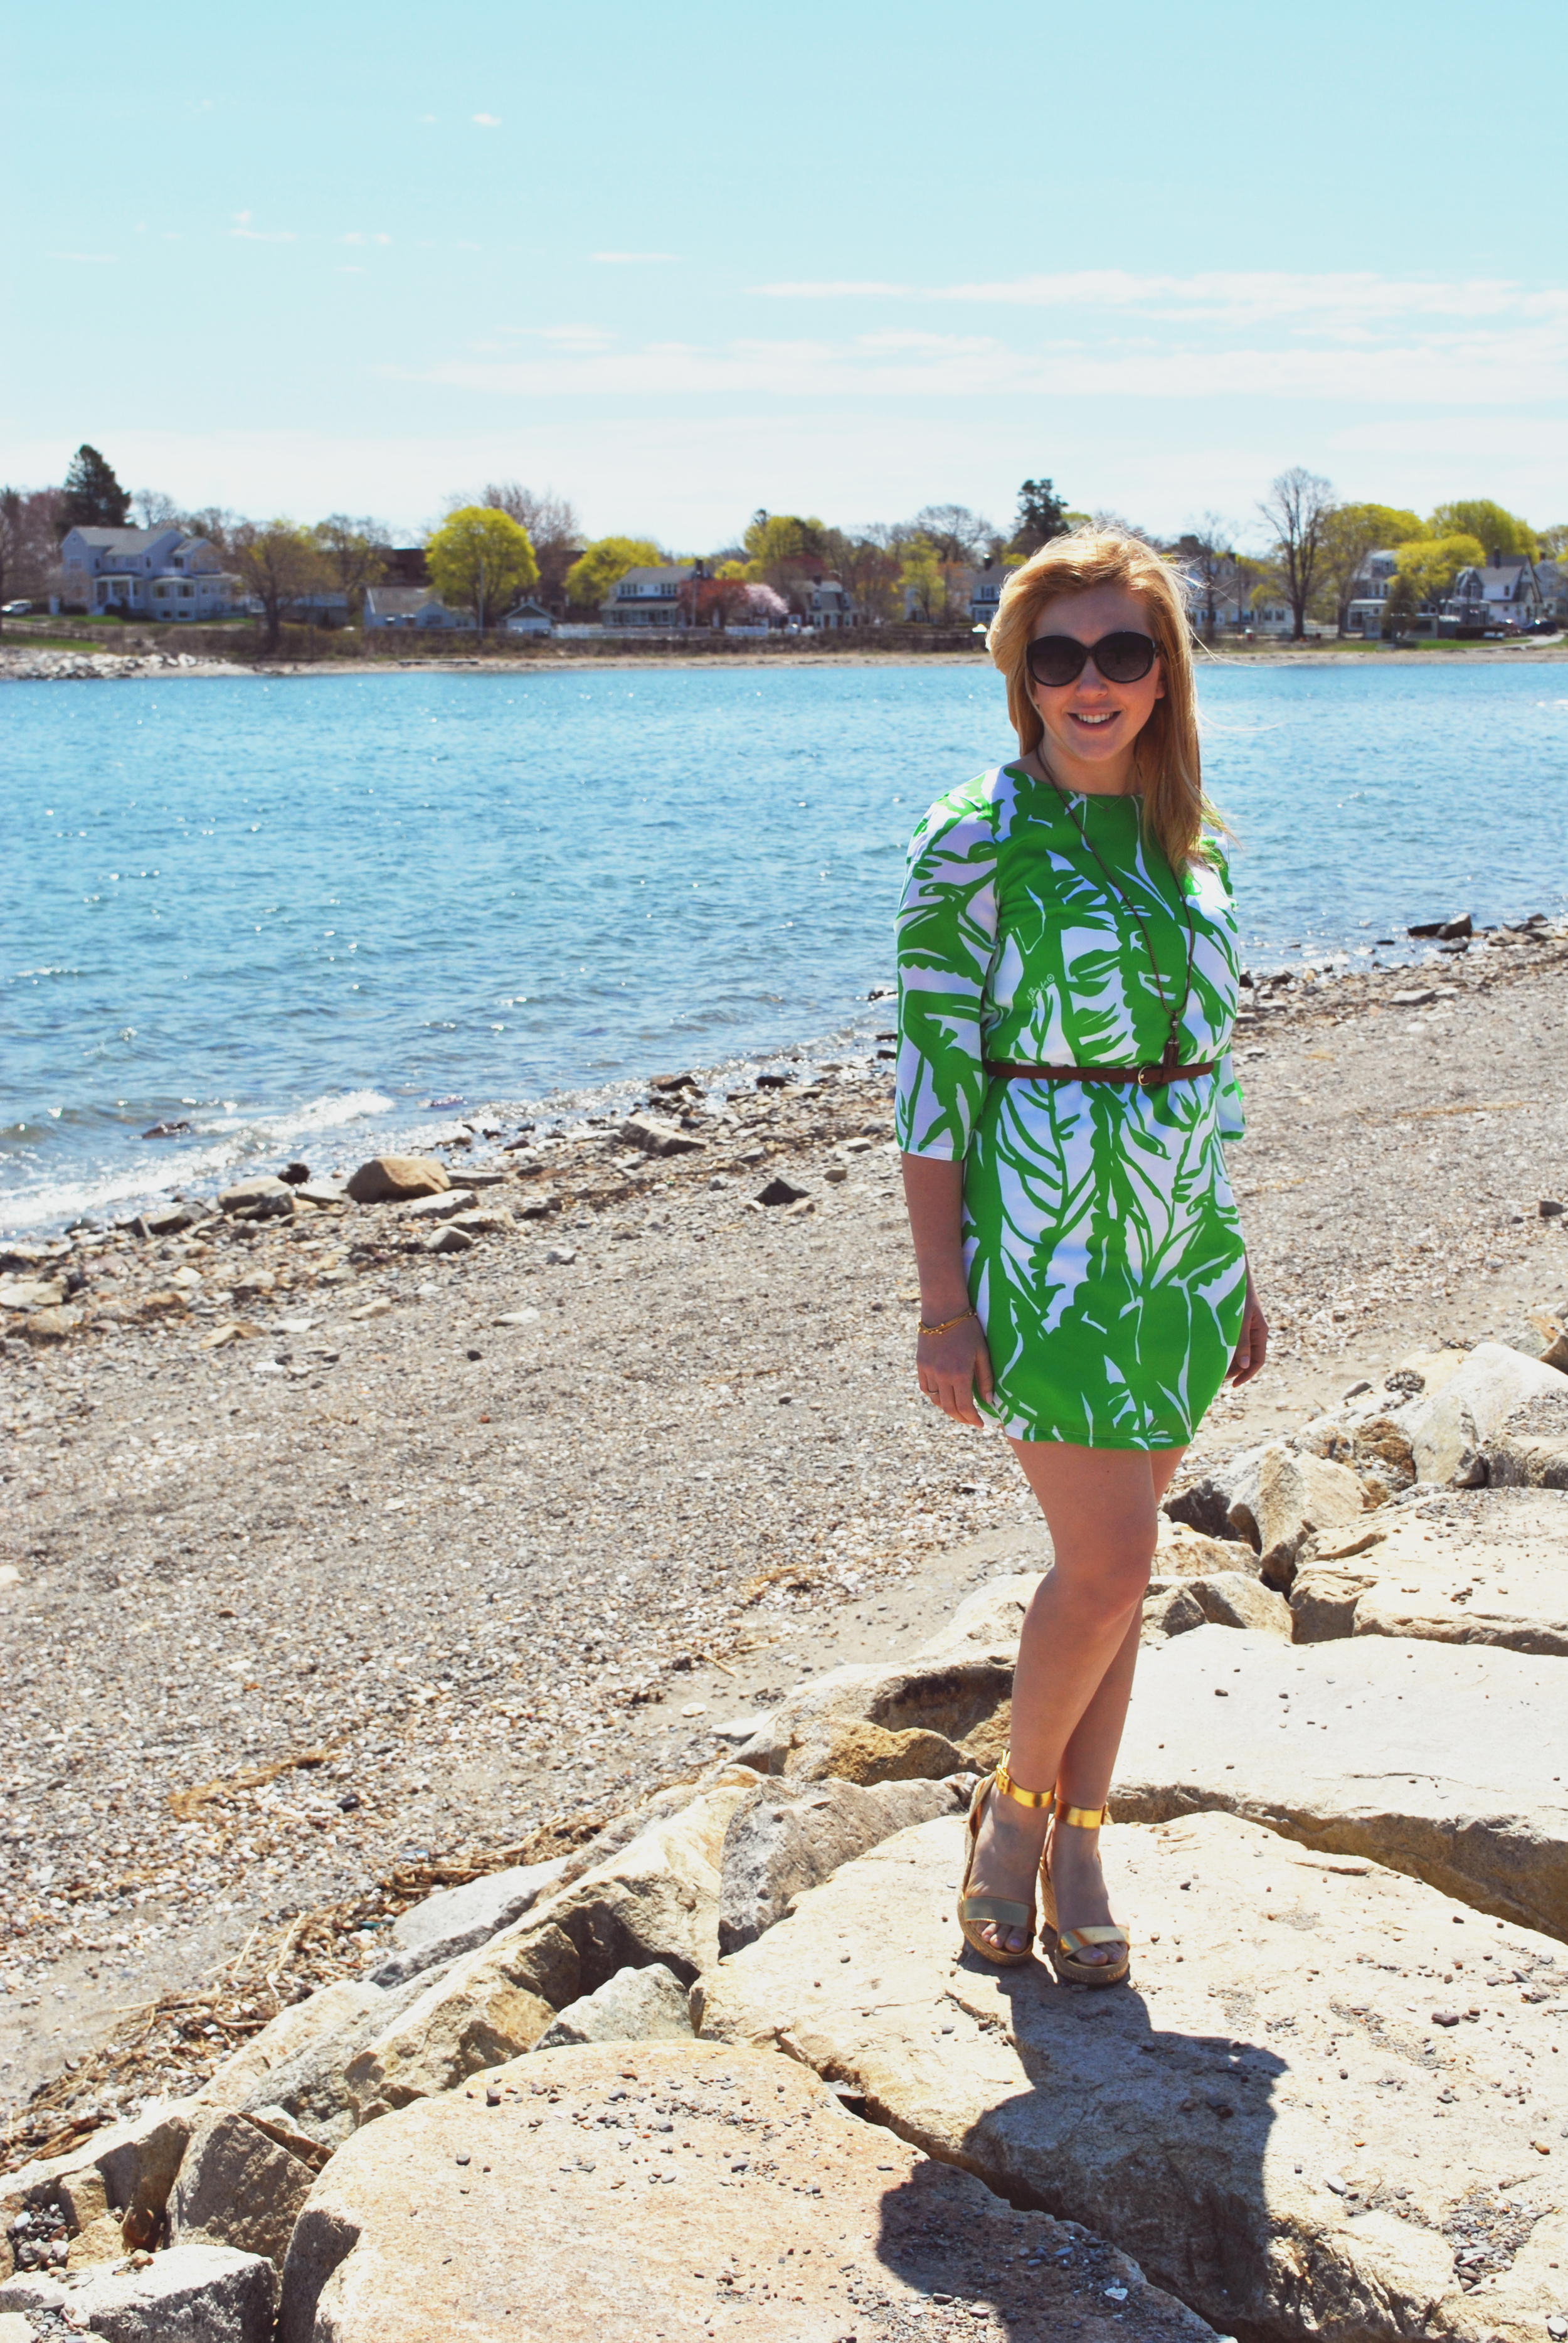 Green with Lilly pulitzer // preppy girl // green dress // summer dress // beach outfit // preppy outfit | thoughtfulwish